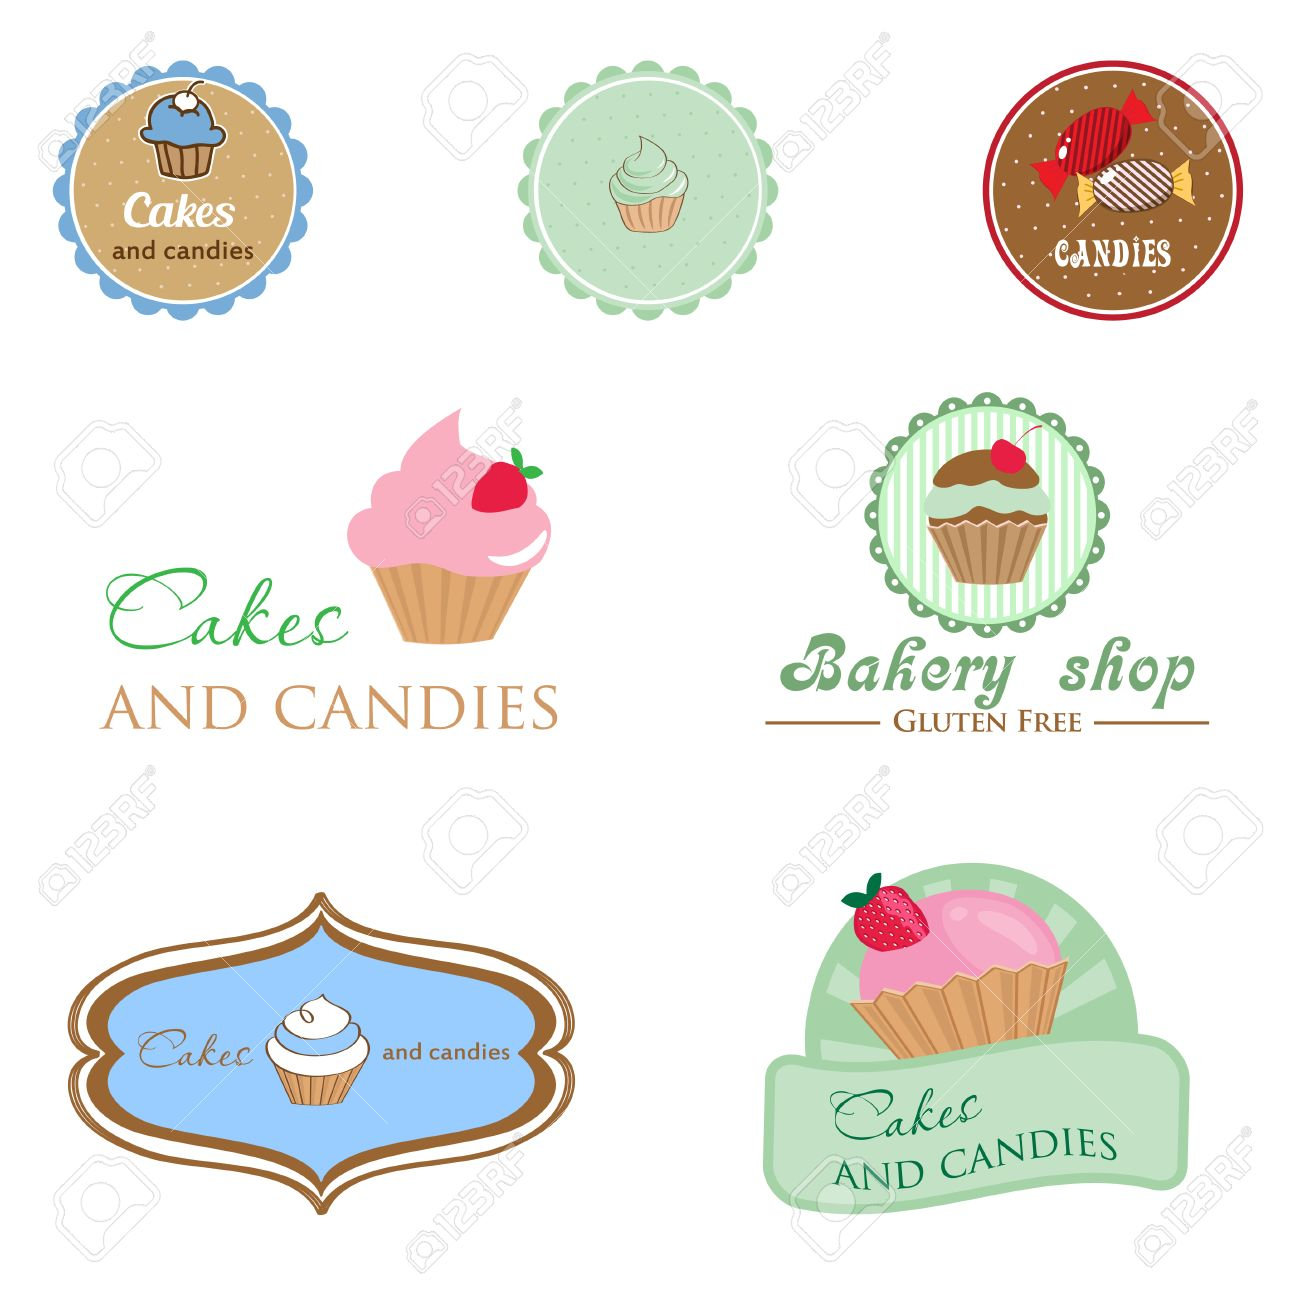 set of vintage style logo cupcake and candies good idea set of vintage style logo cupcake and candies good idea for label banner